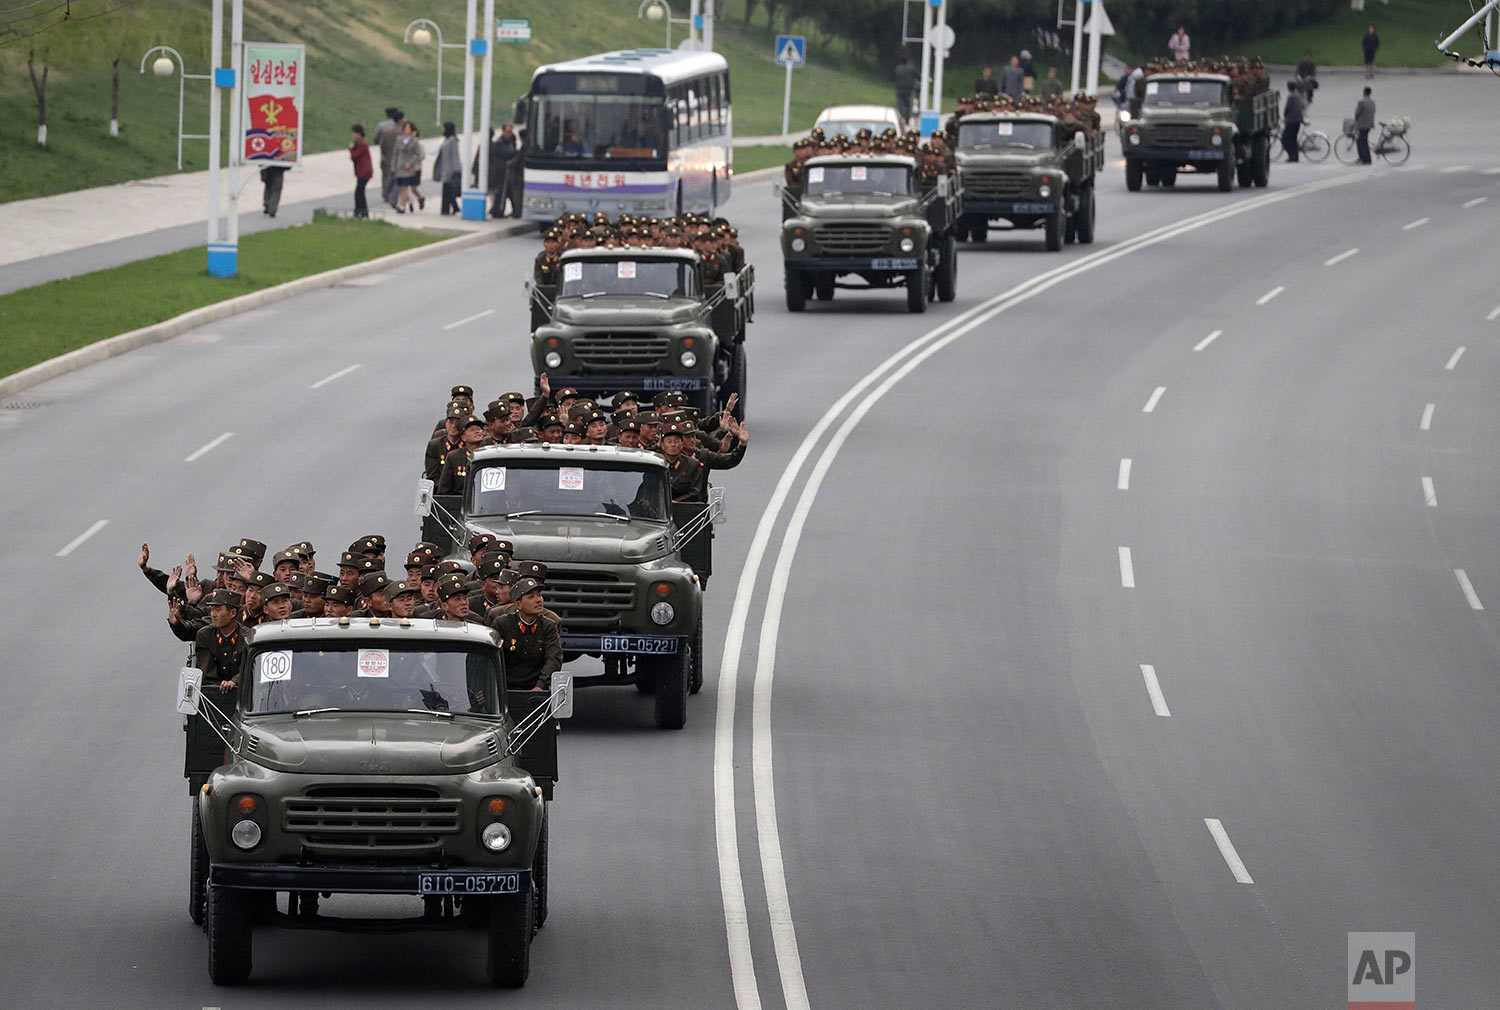 North Korean soldiers ride in the back of trucks as they drive down Mirae Scientists Street in Pyongyang on April 19, 2017, after participating in a military parade held to celebrate the 105th anniversary of the birth of the country's late founder, Kim Il Sung. (AP Photo/Wong Maye-E)